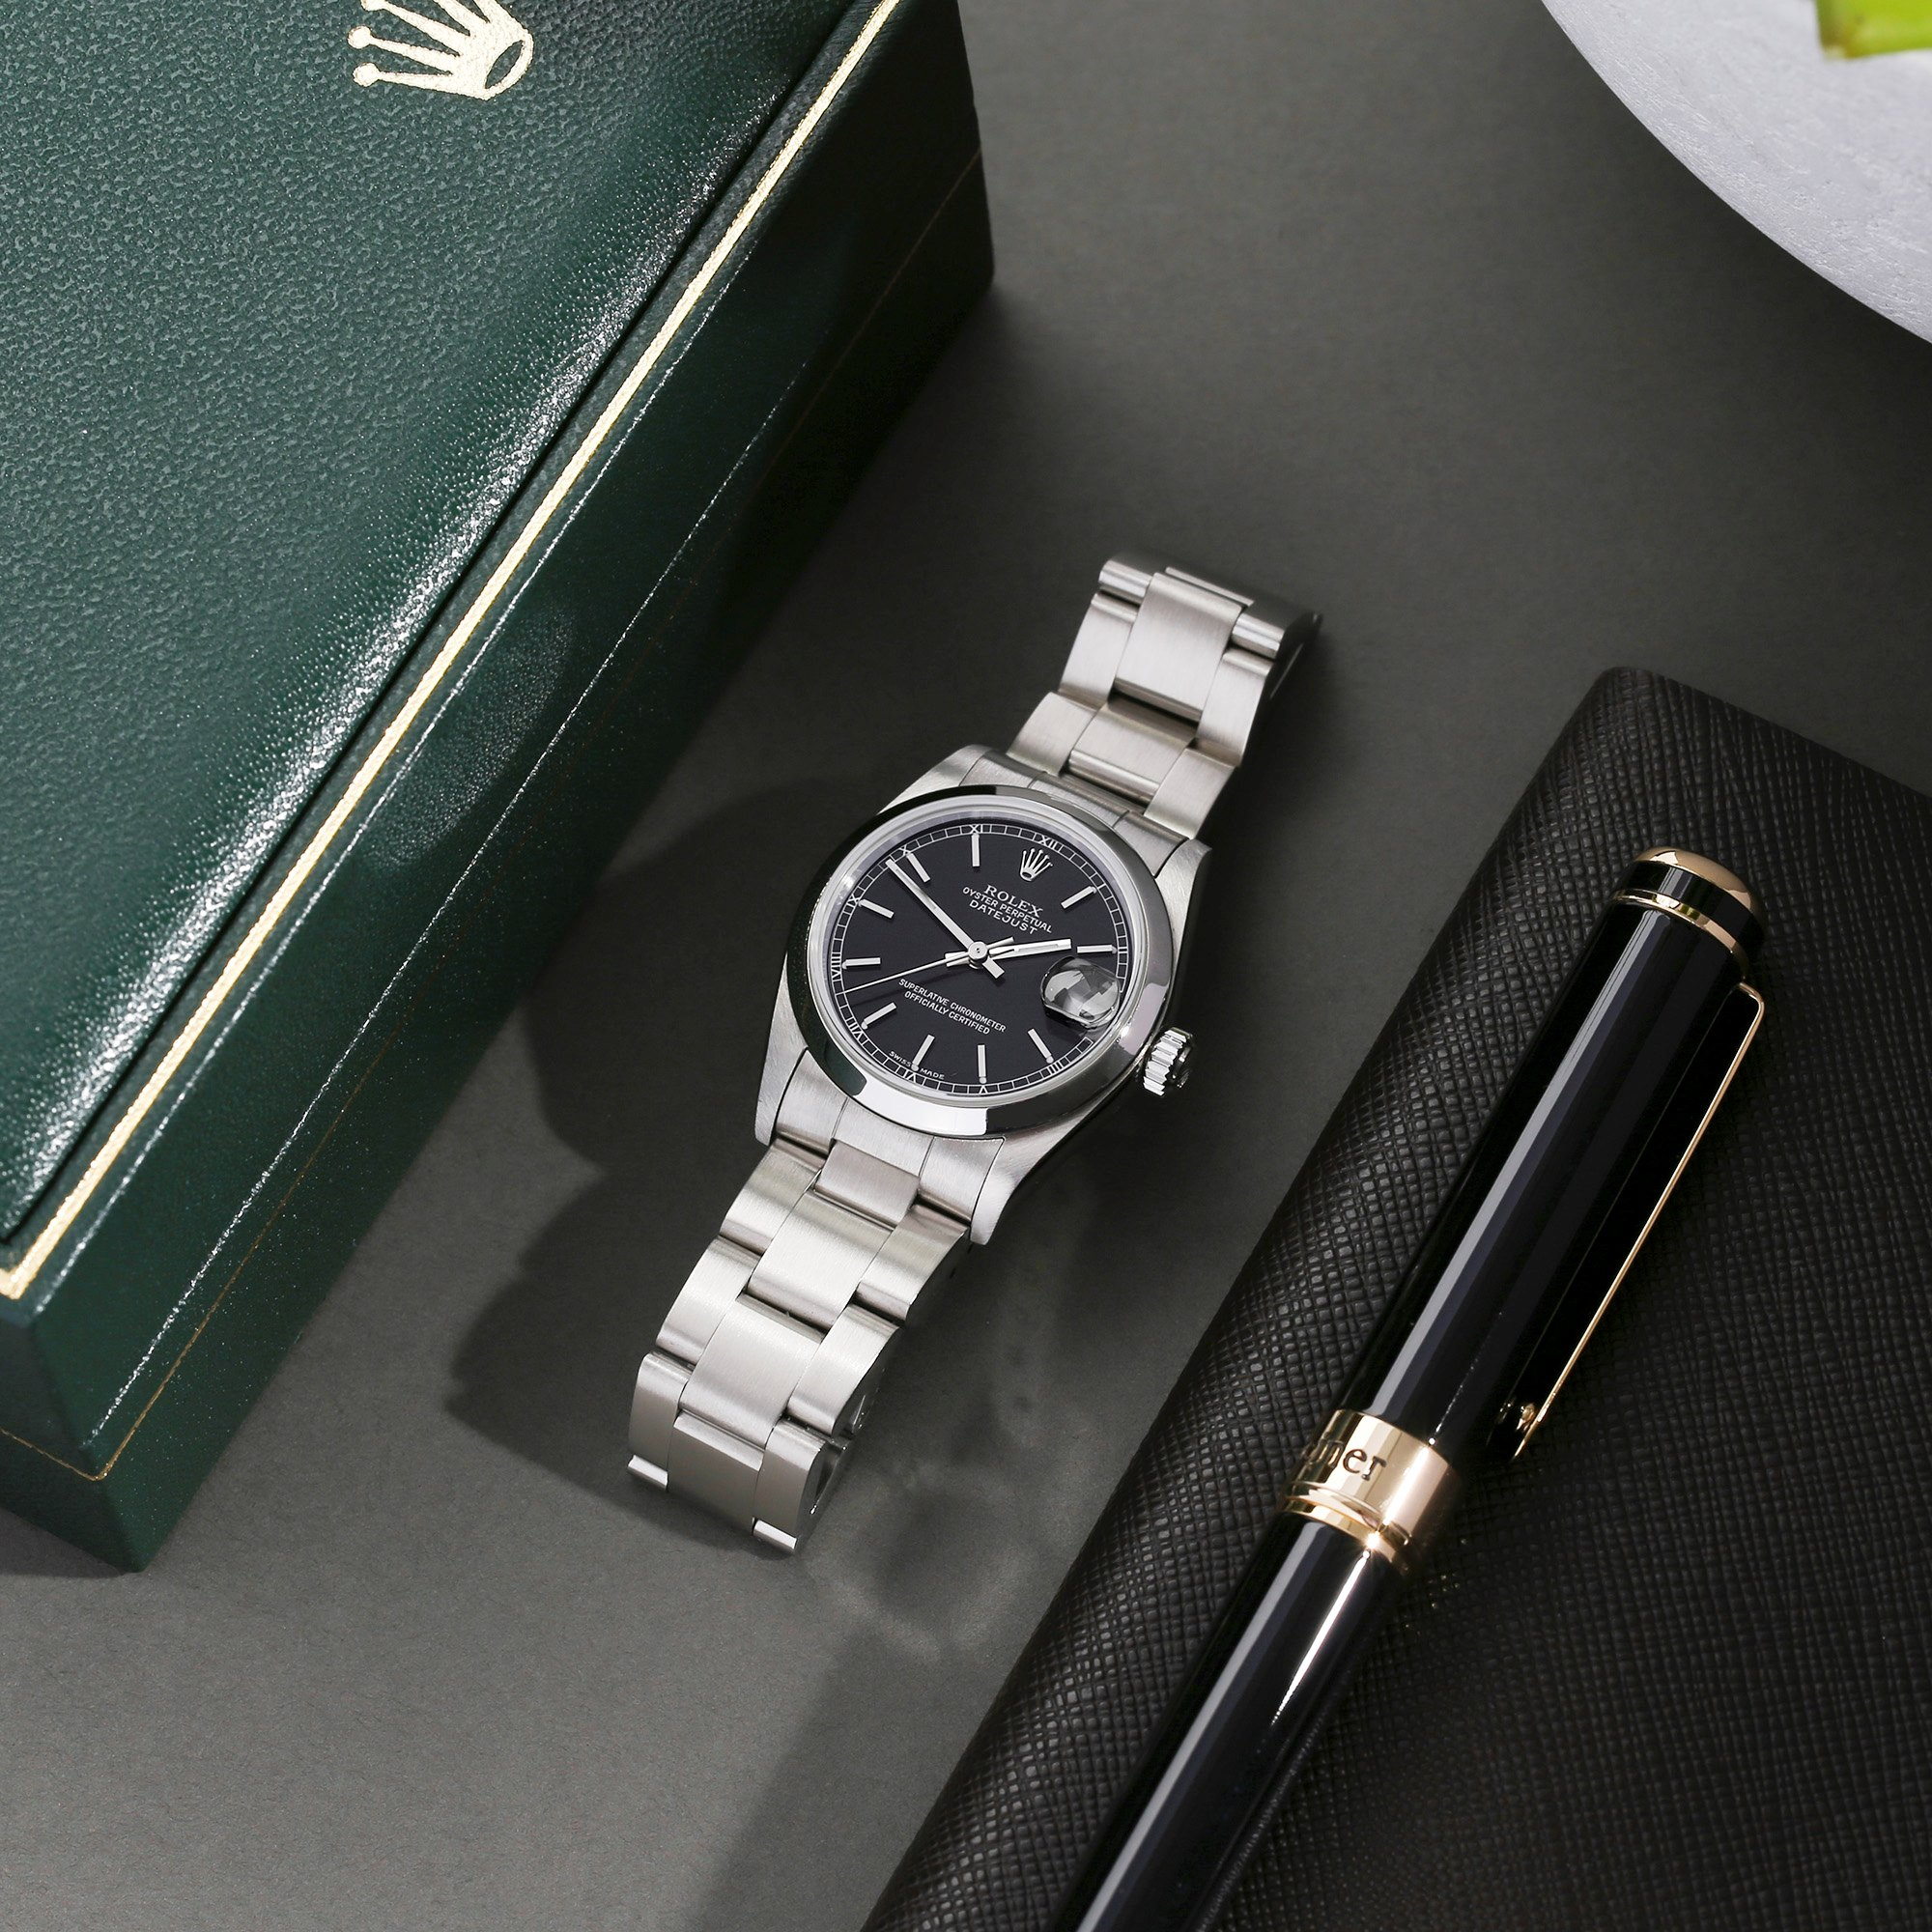 Rolex Datejust 31 78240 Ladies Stainless Steel Watch - Image 2 of 10